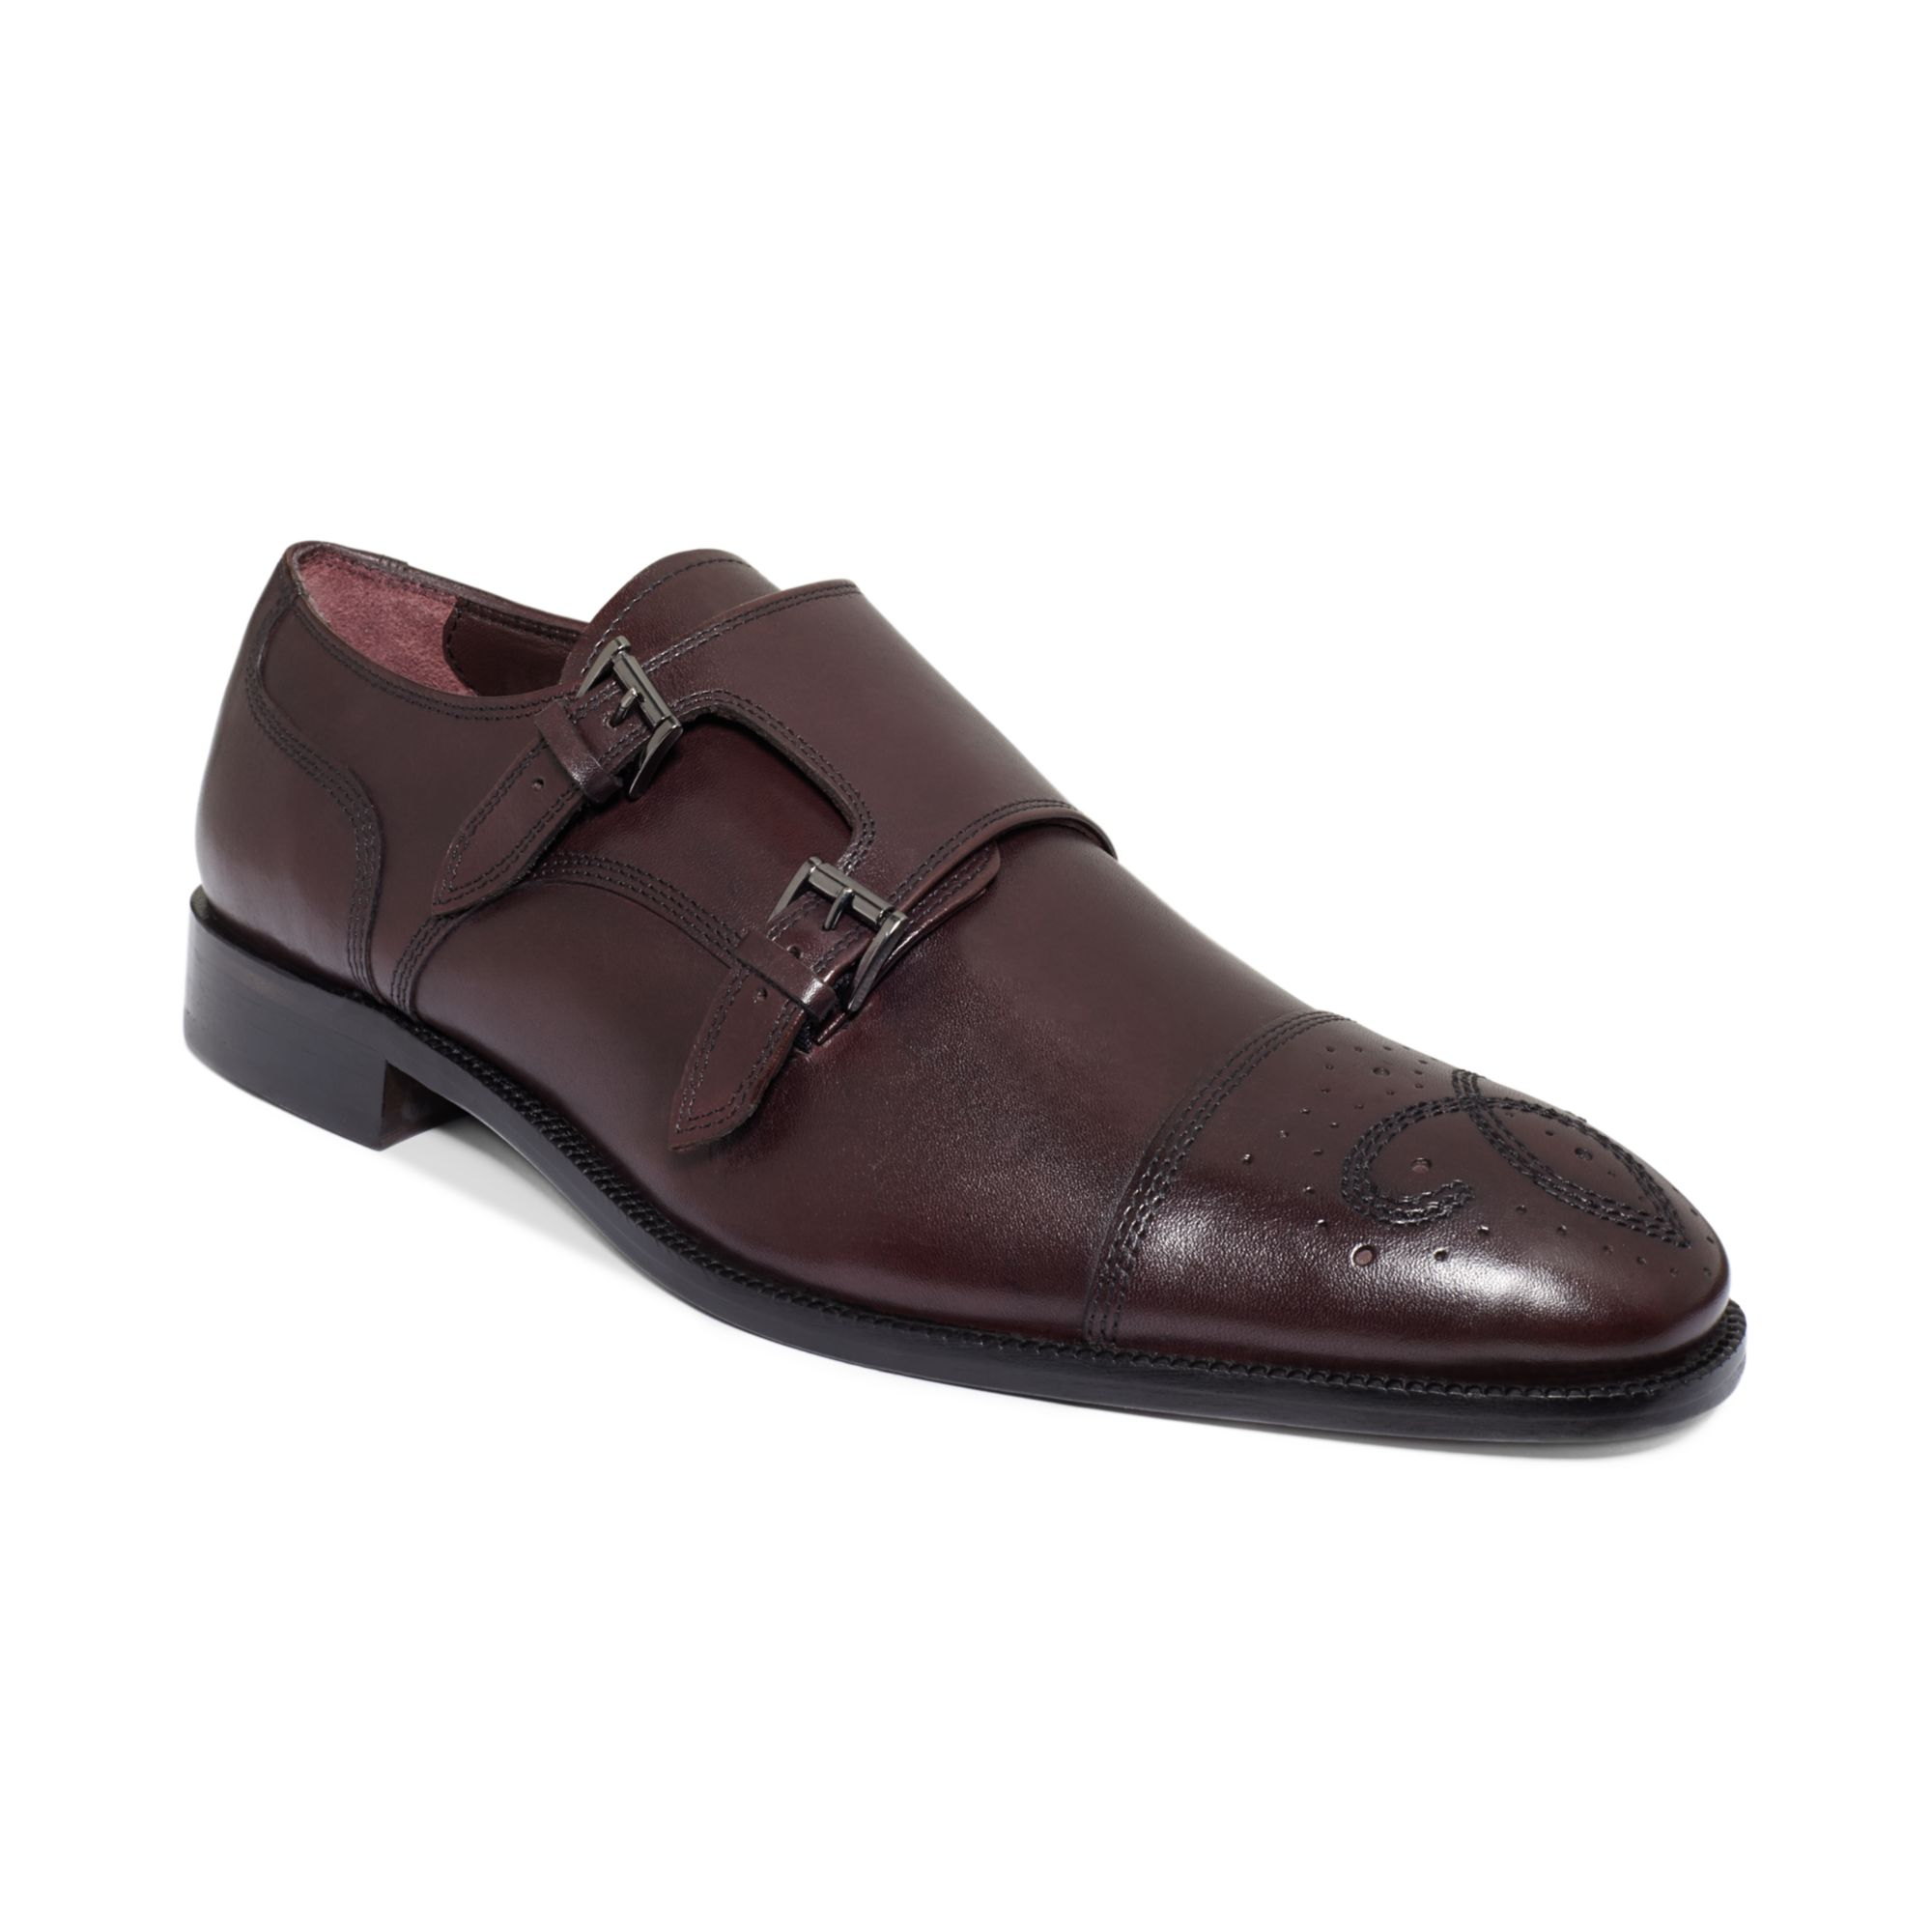 Donald J Pliner Leather Monk Shoes